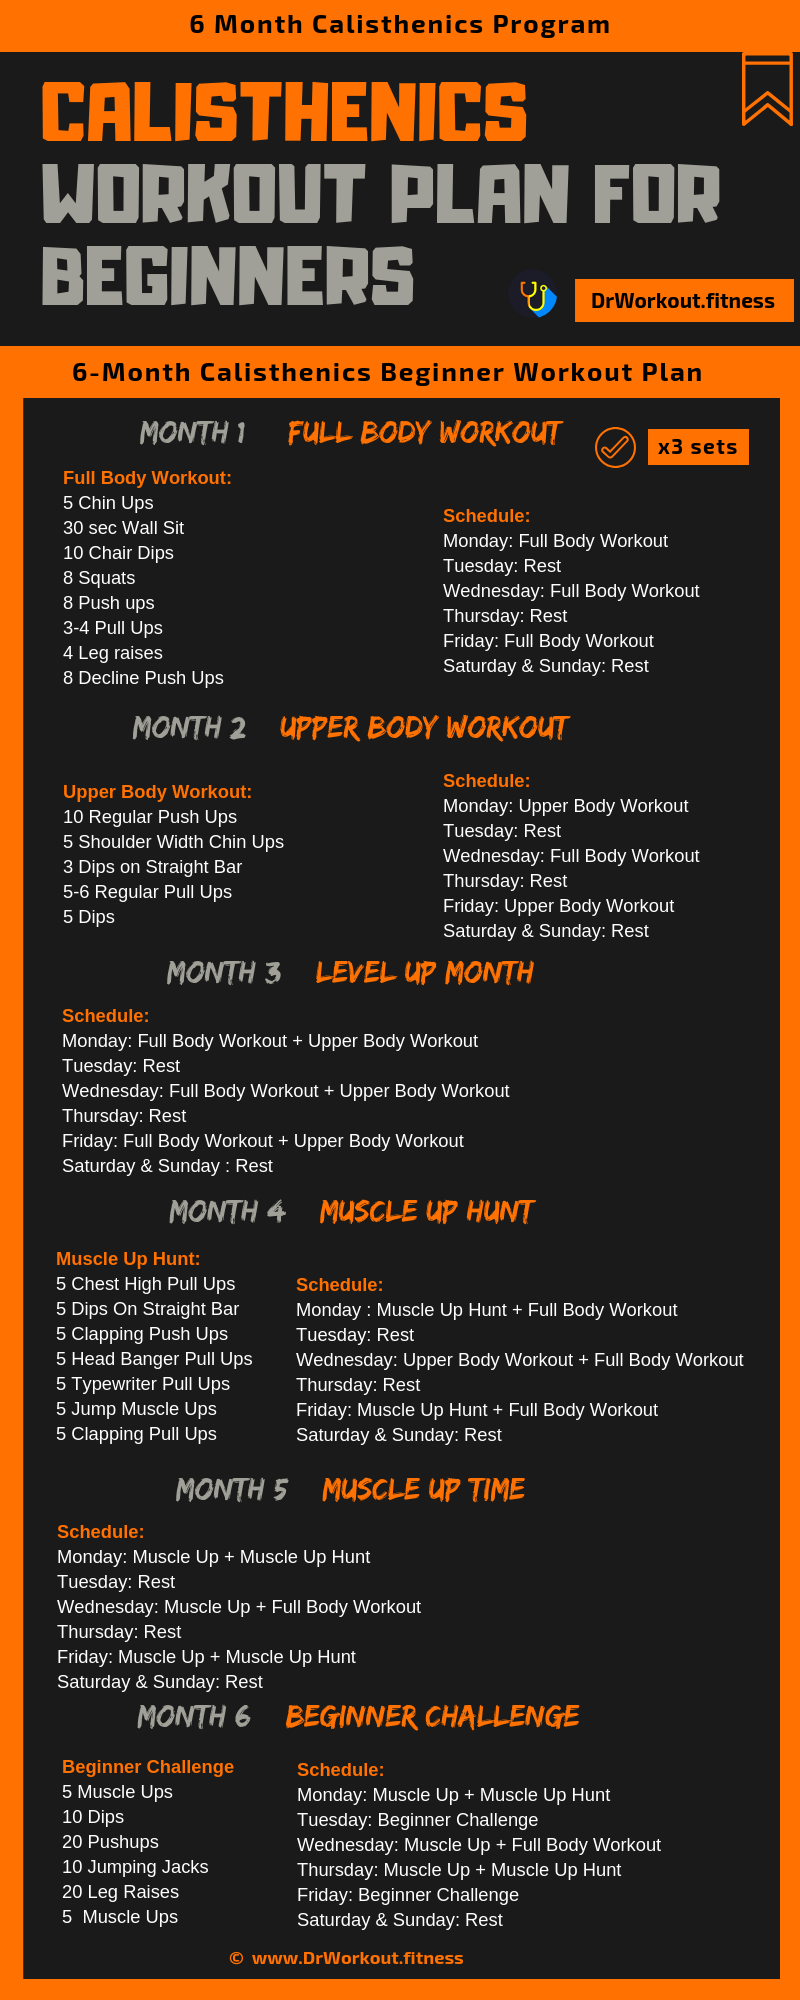 Photo of Calisthenics Workout Plan for Beginners #calisthenics #workout #workoutplan #fit…